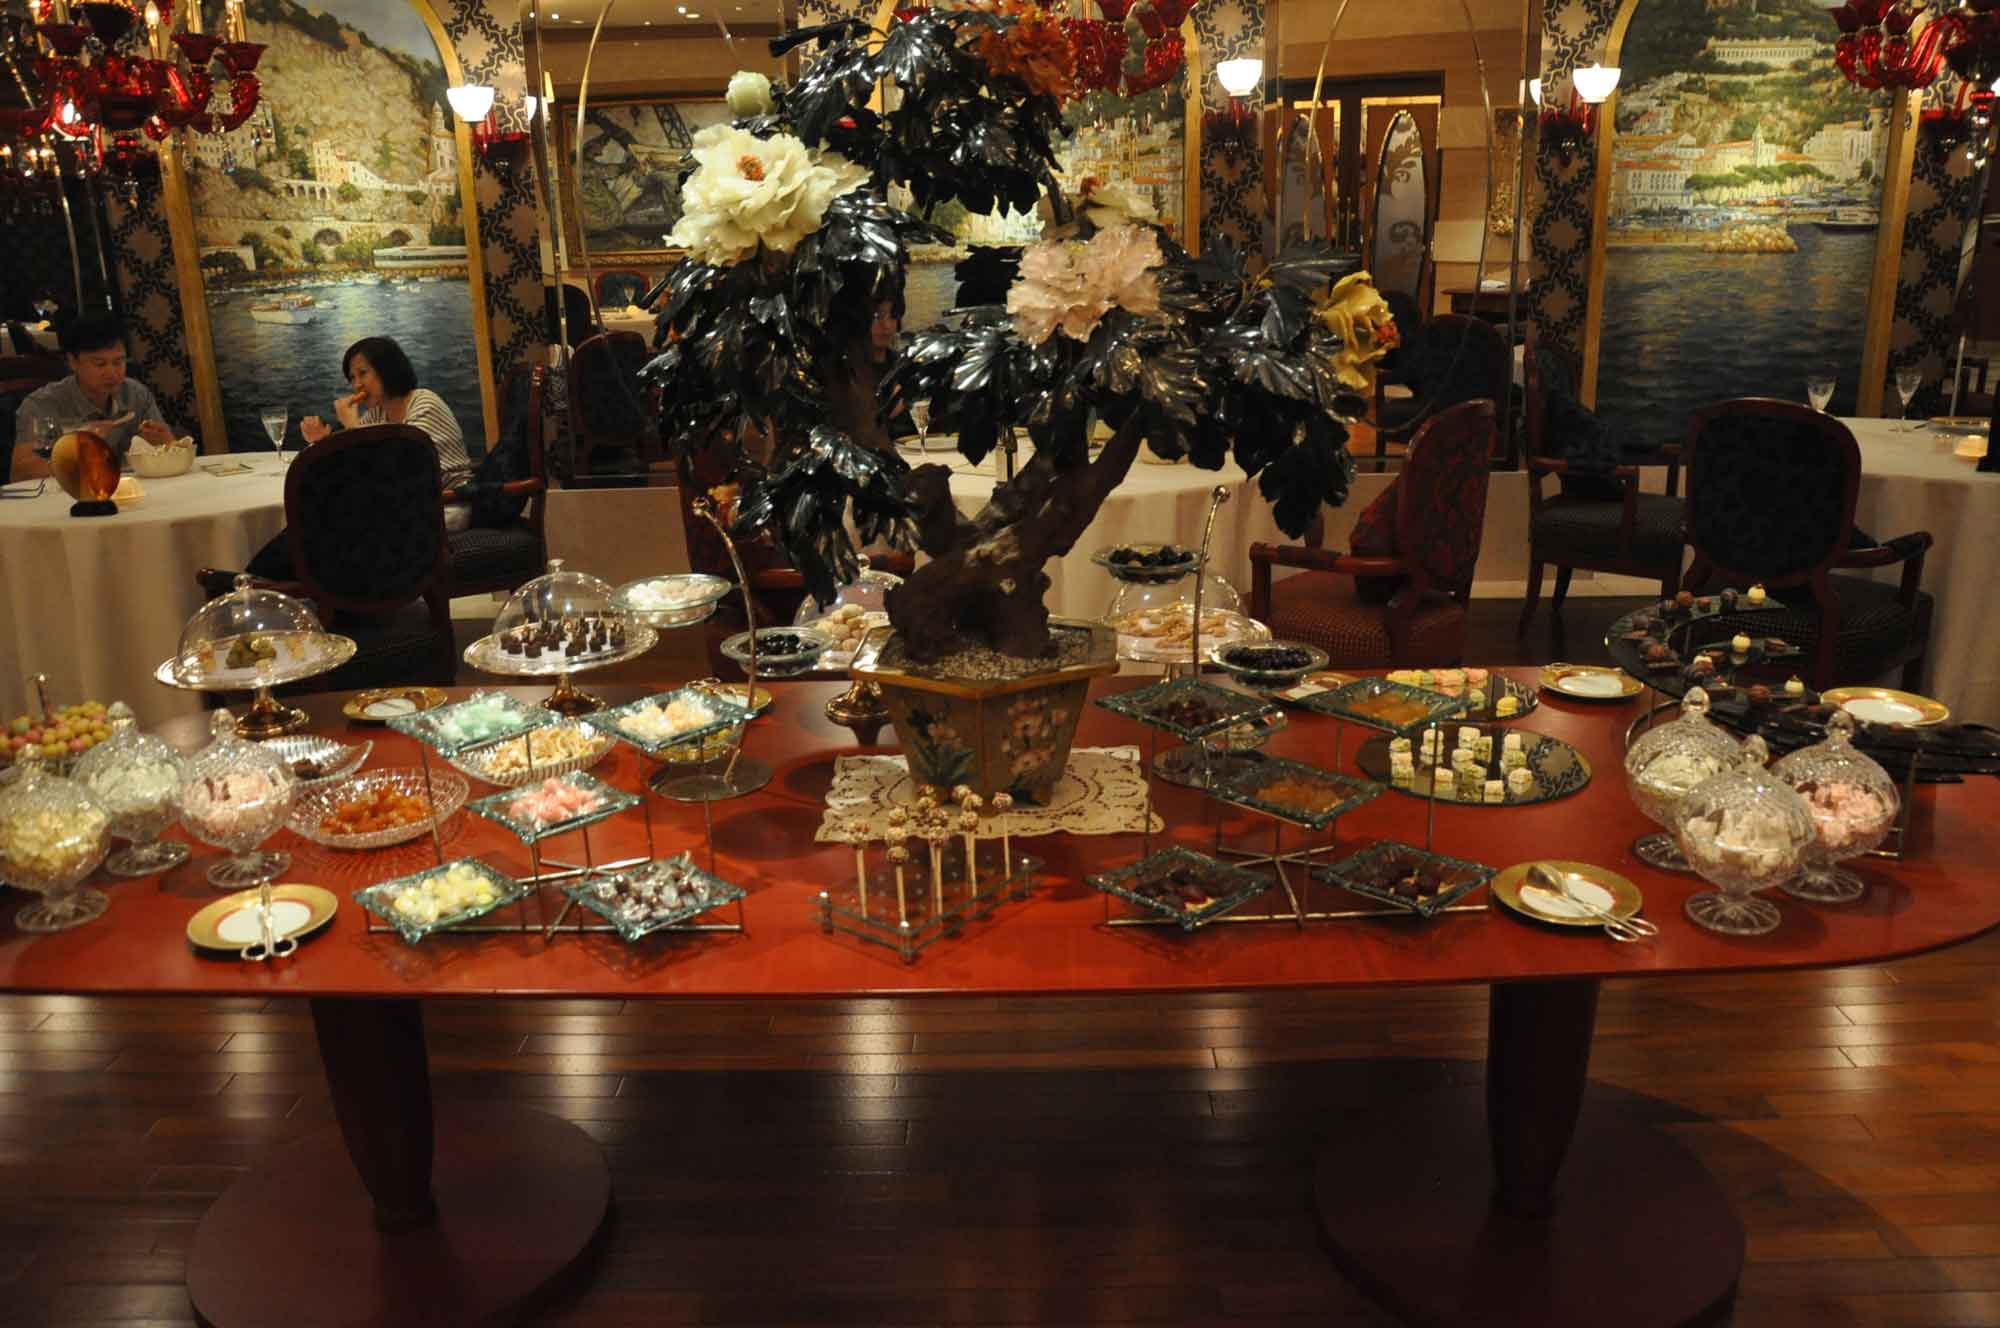 Casa Don Alfonso Macau decorative table